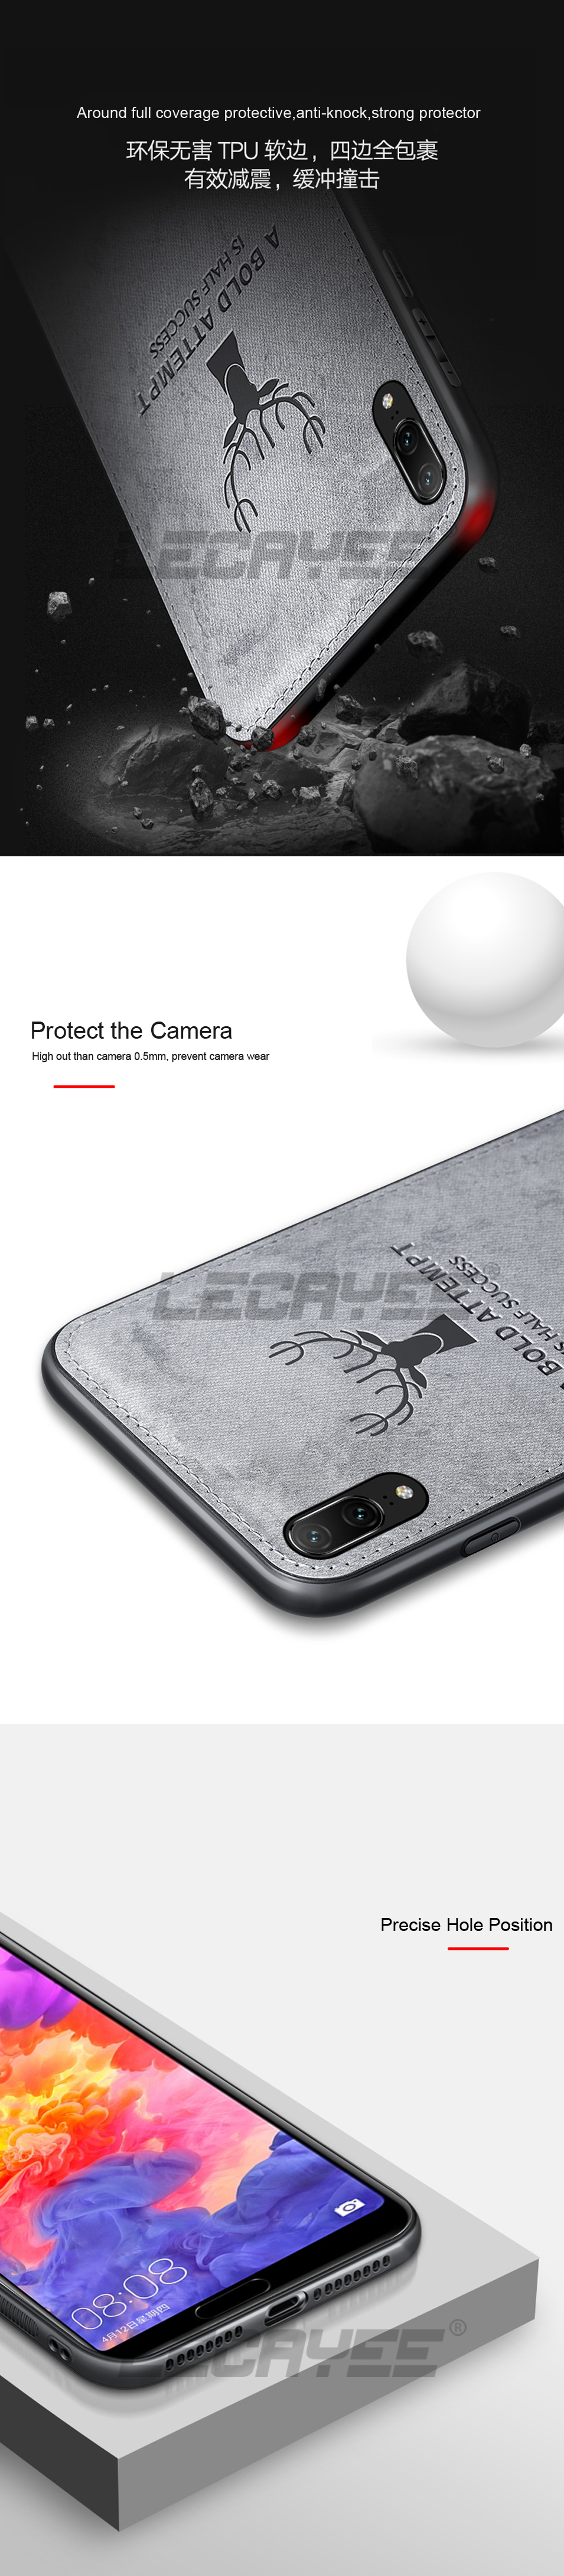 LECAYEE For Huawei P20 Lite Cloth Phone Protection Case for Huawei P20 Pro Nova 3 3i 3e 2s Soft Case Back Cover Shockproof (10)